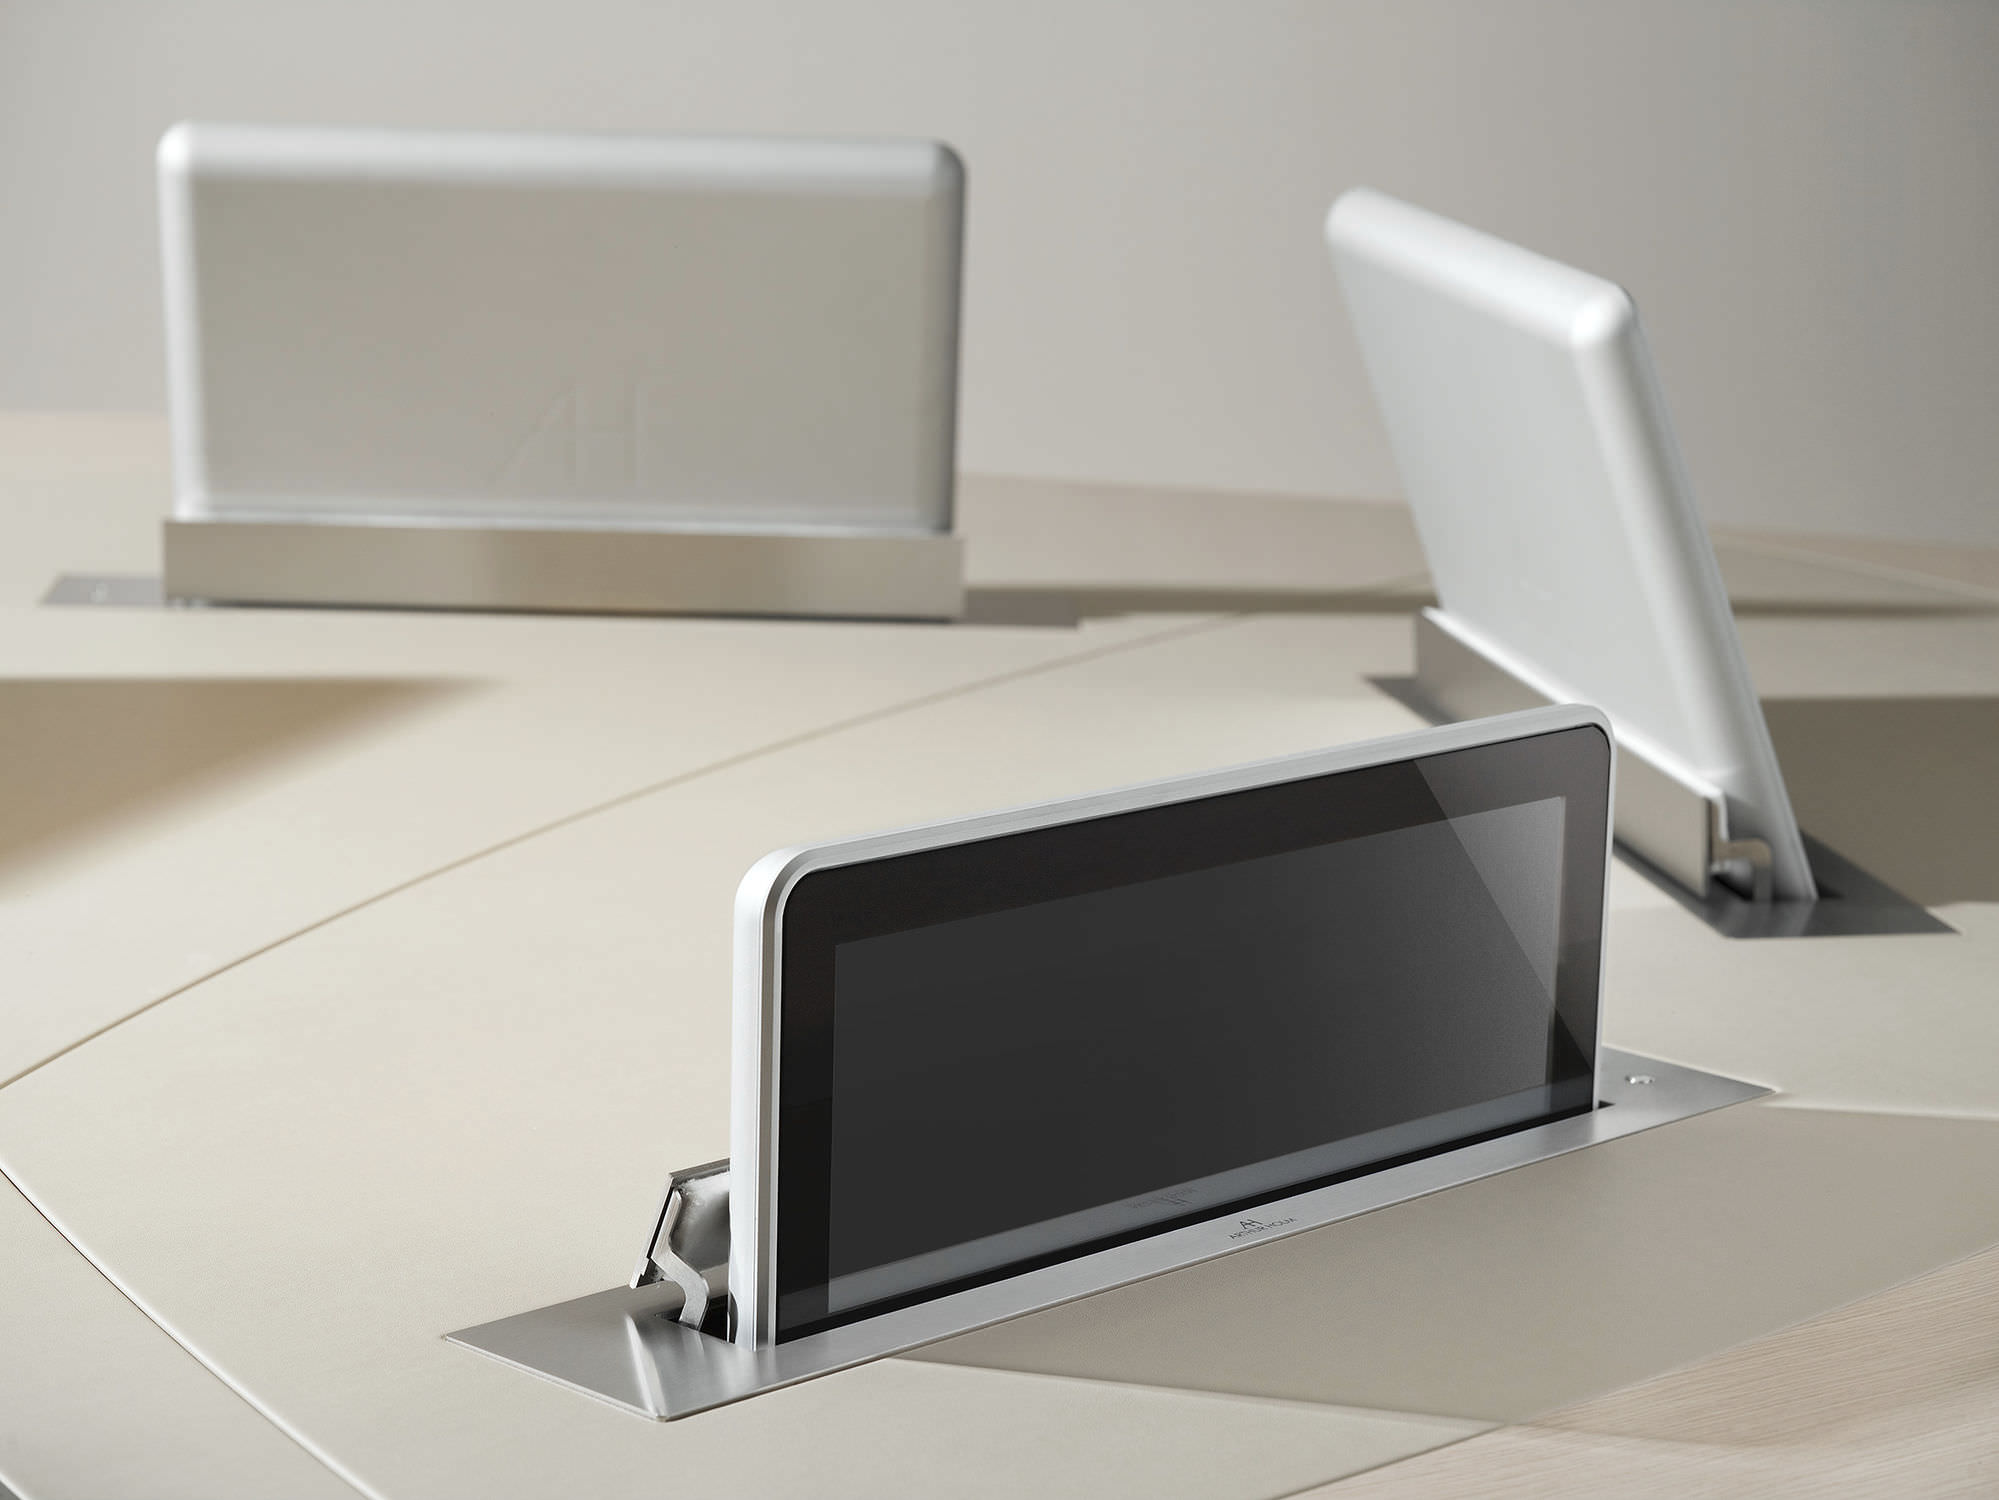 ... Conference table touch screen / wall-mounted / retractable DYNAMICX2  Arthur Holm ...